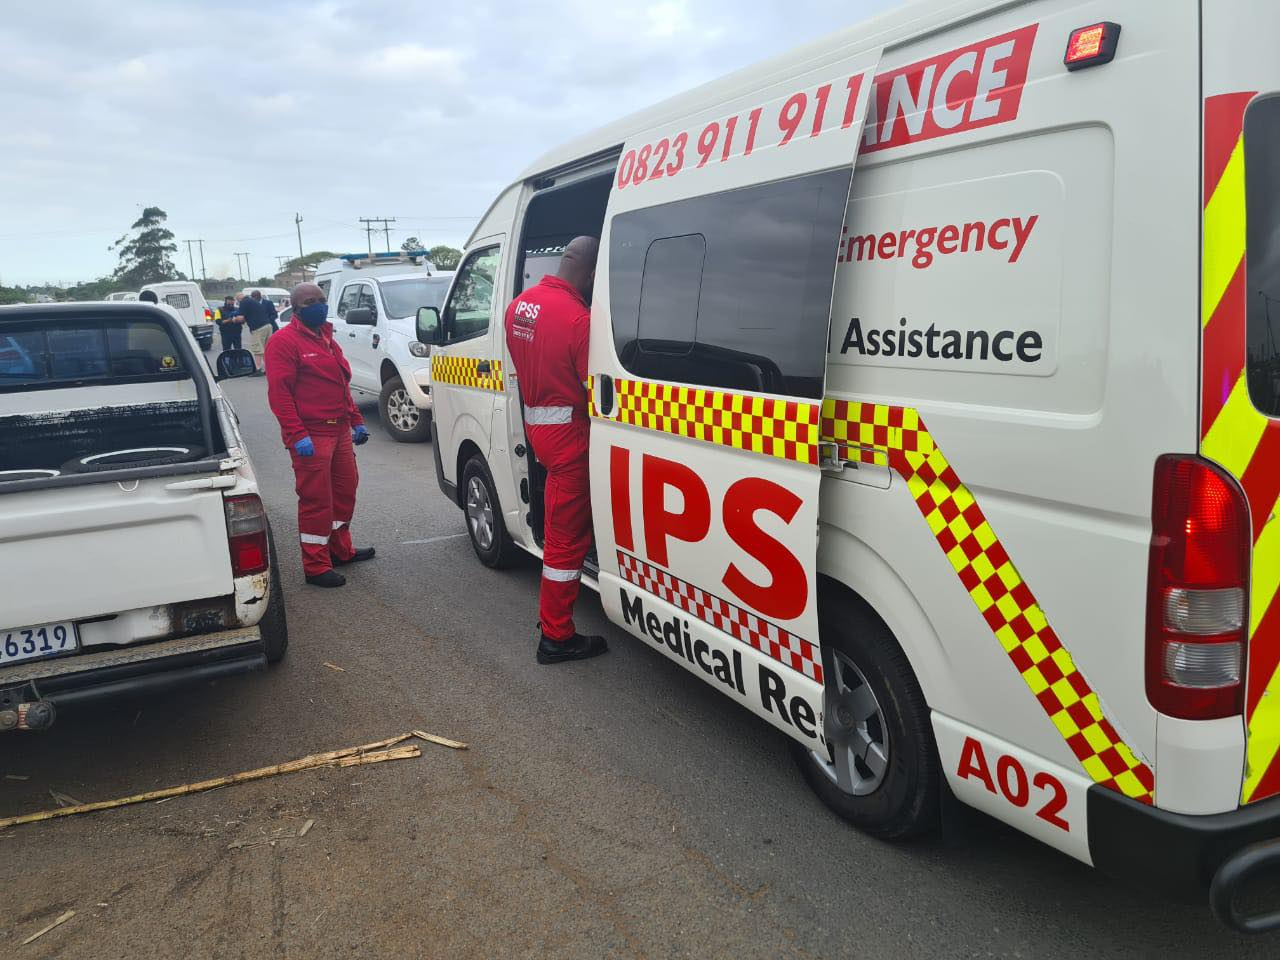 KZN taxi boss gunned down, pupils wounded in shooting